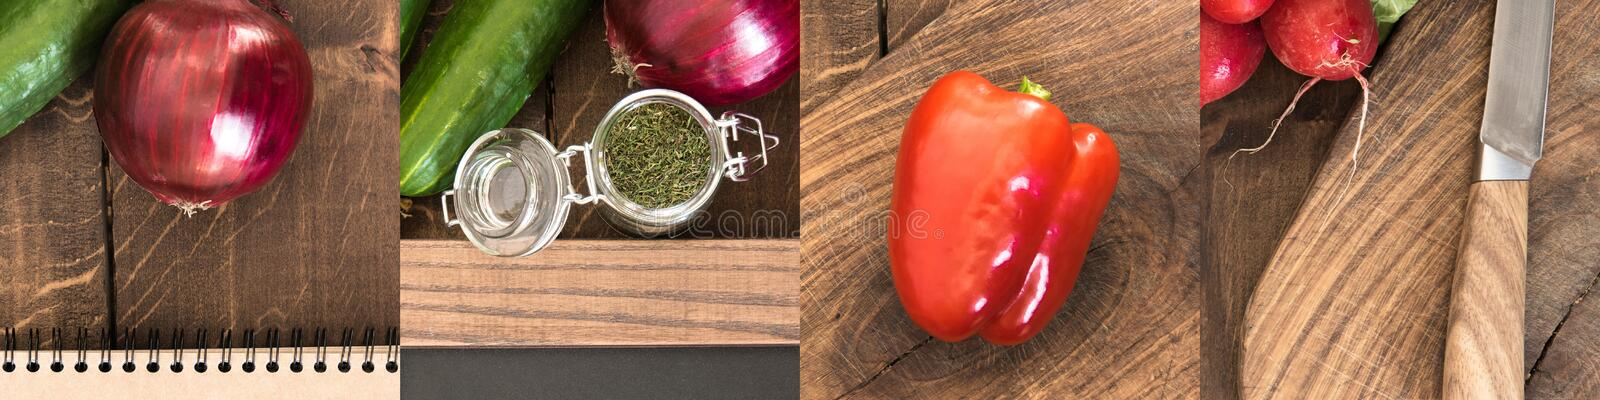 Bell pepper, red onion and cucumber on wooden brown table. Collage of bell pepper, red onion and cucumber on wooden brown table royalty free stock image